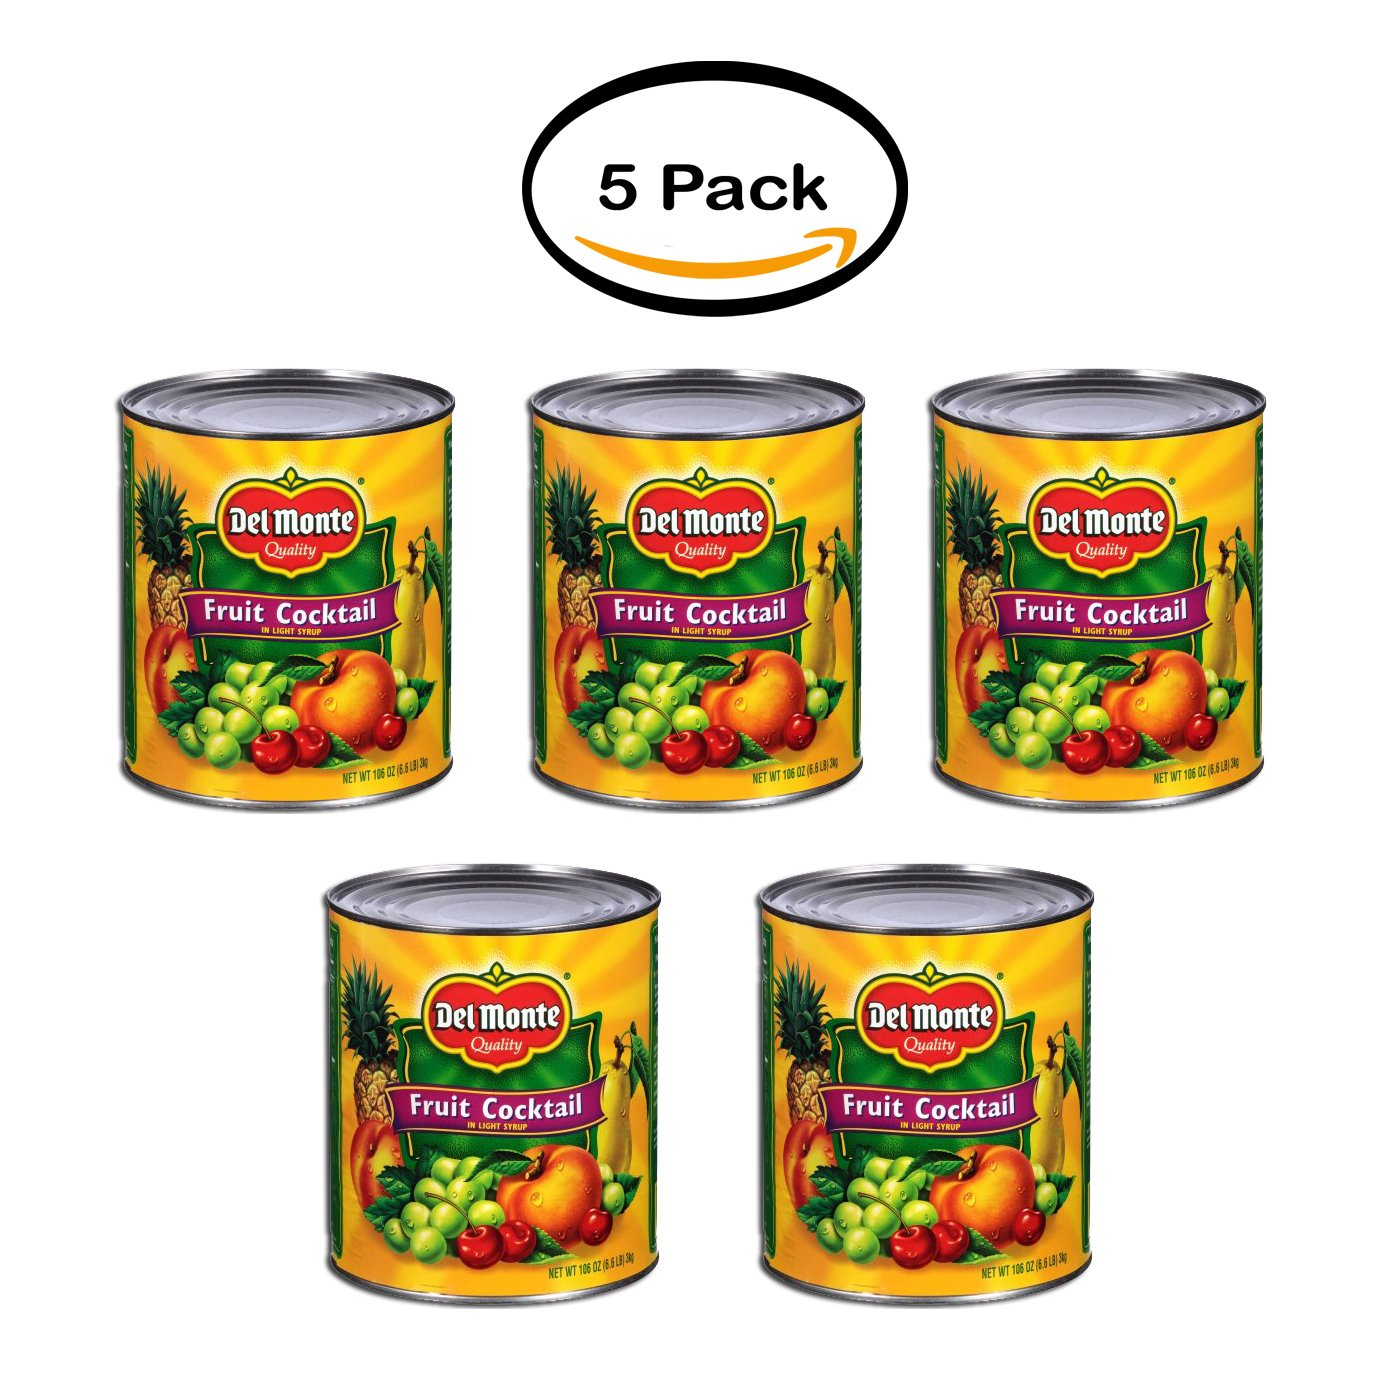 PACK OF 5 - Del Monte Quality Fruit Cocktail In Light Syrup, 106 oz